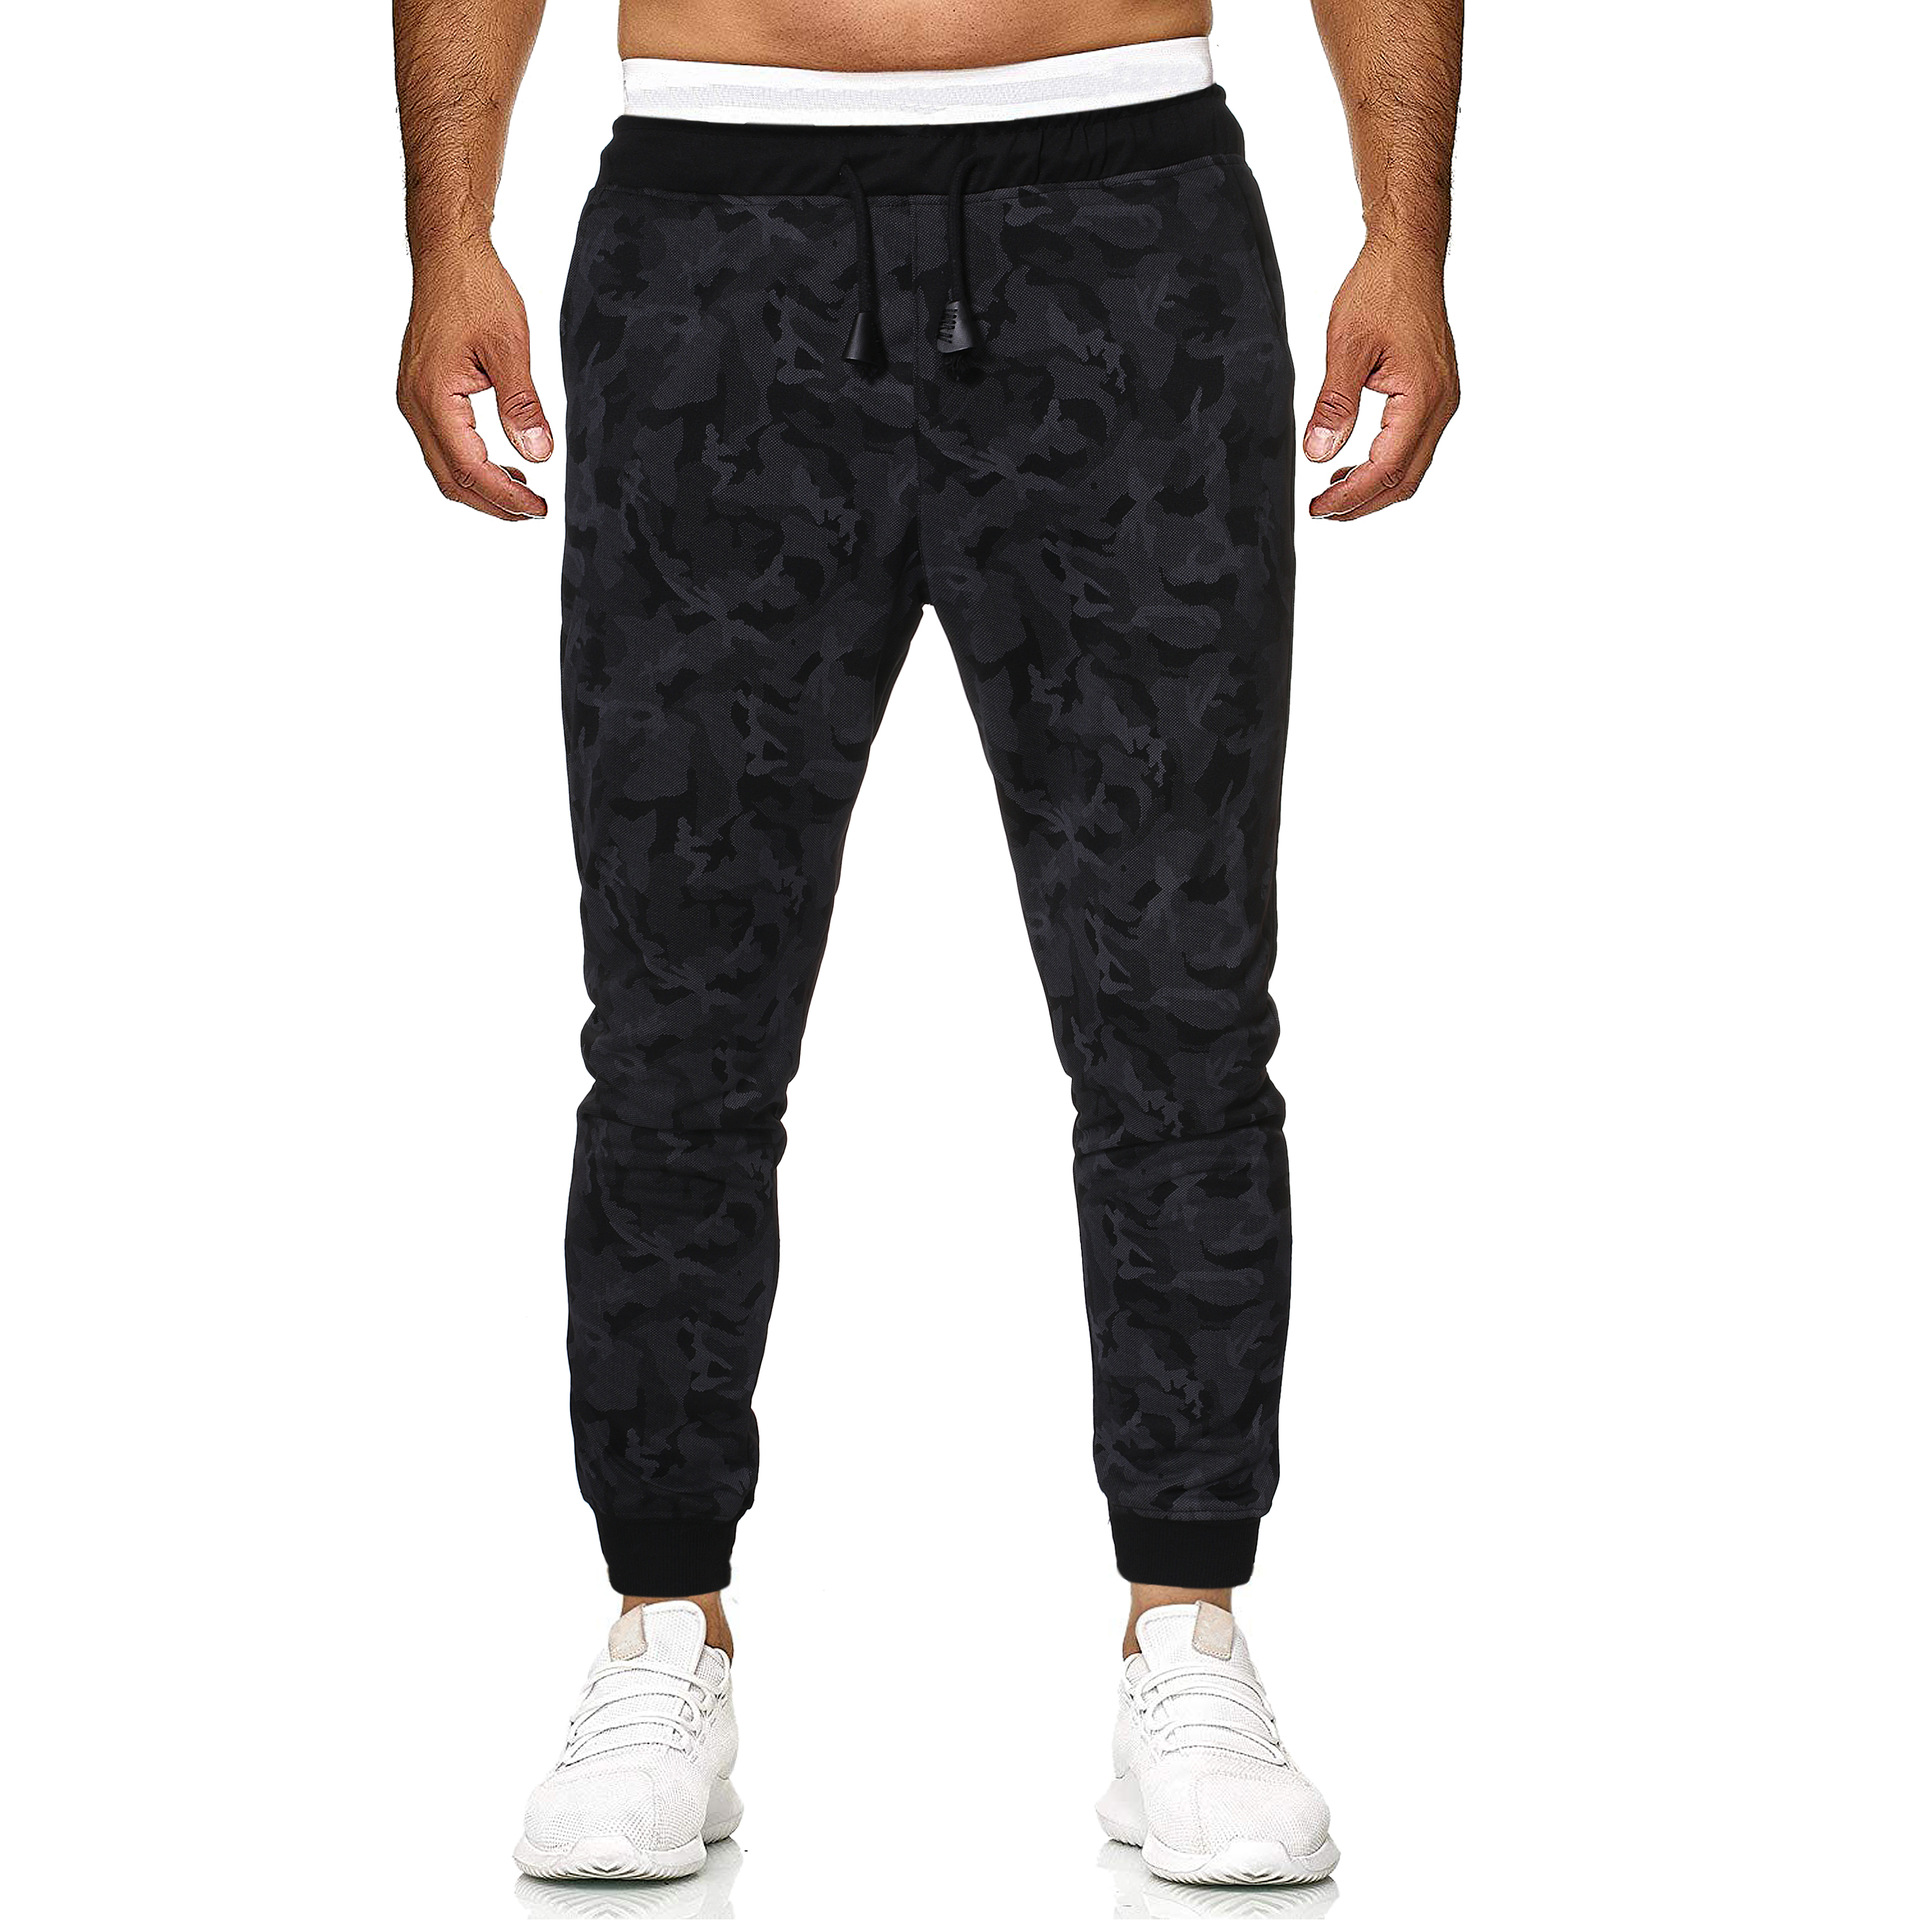 Trousers Men's 2019 Summer New Style Fashion Men Casual Trousers Harem Gray Camouflage Pants K114